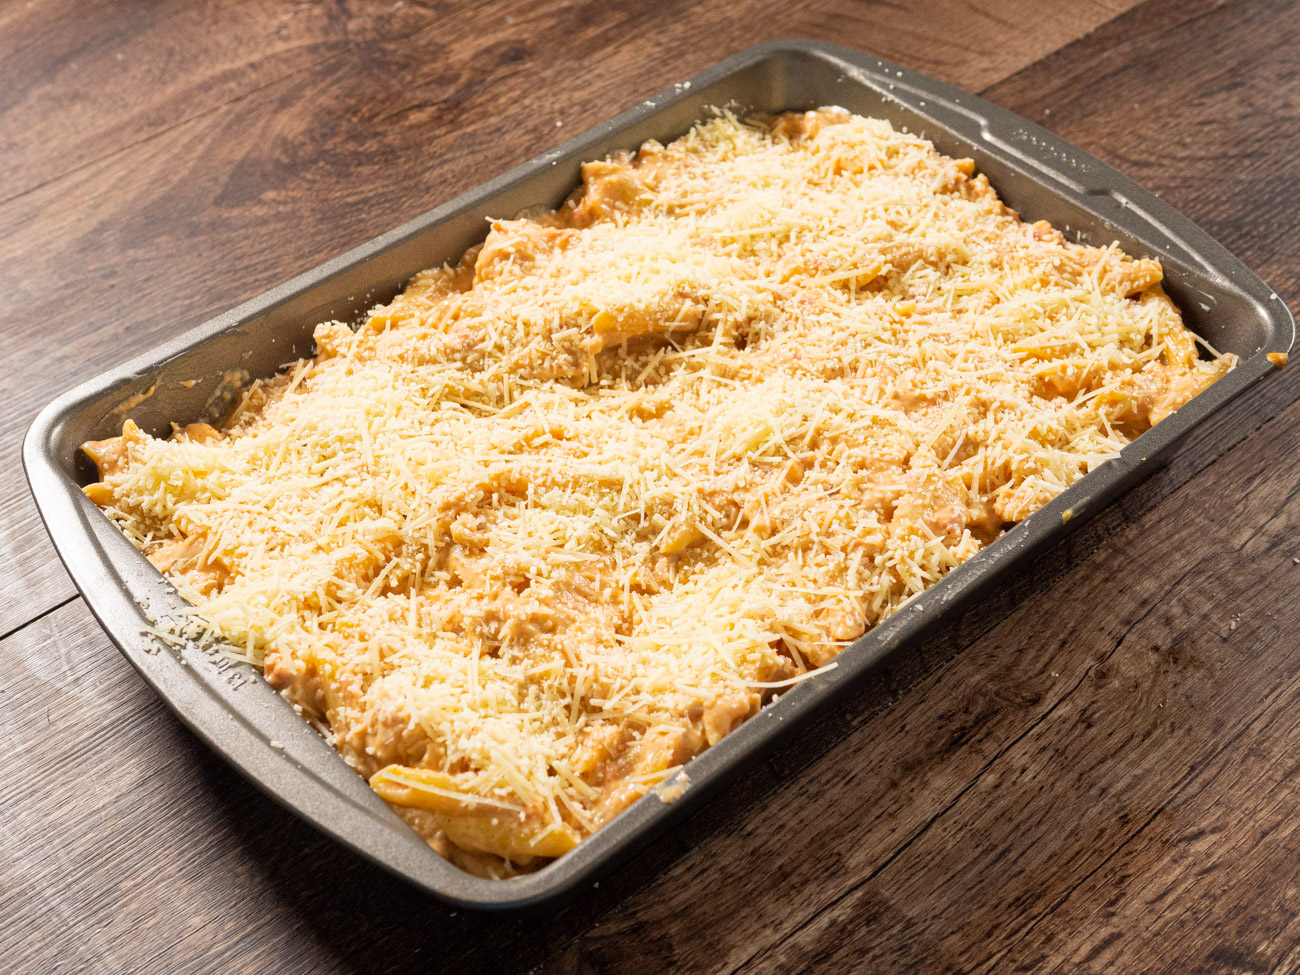 Stir in cooked pasta. Spread into prepared baking dish and top with cheeses.